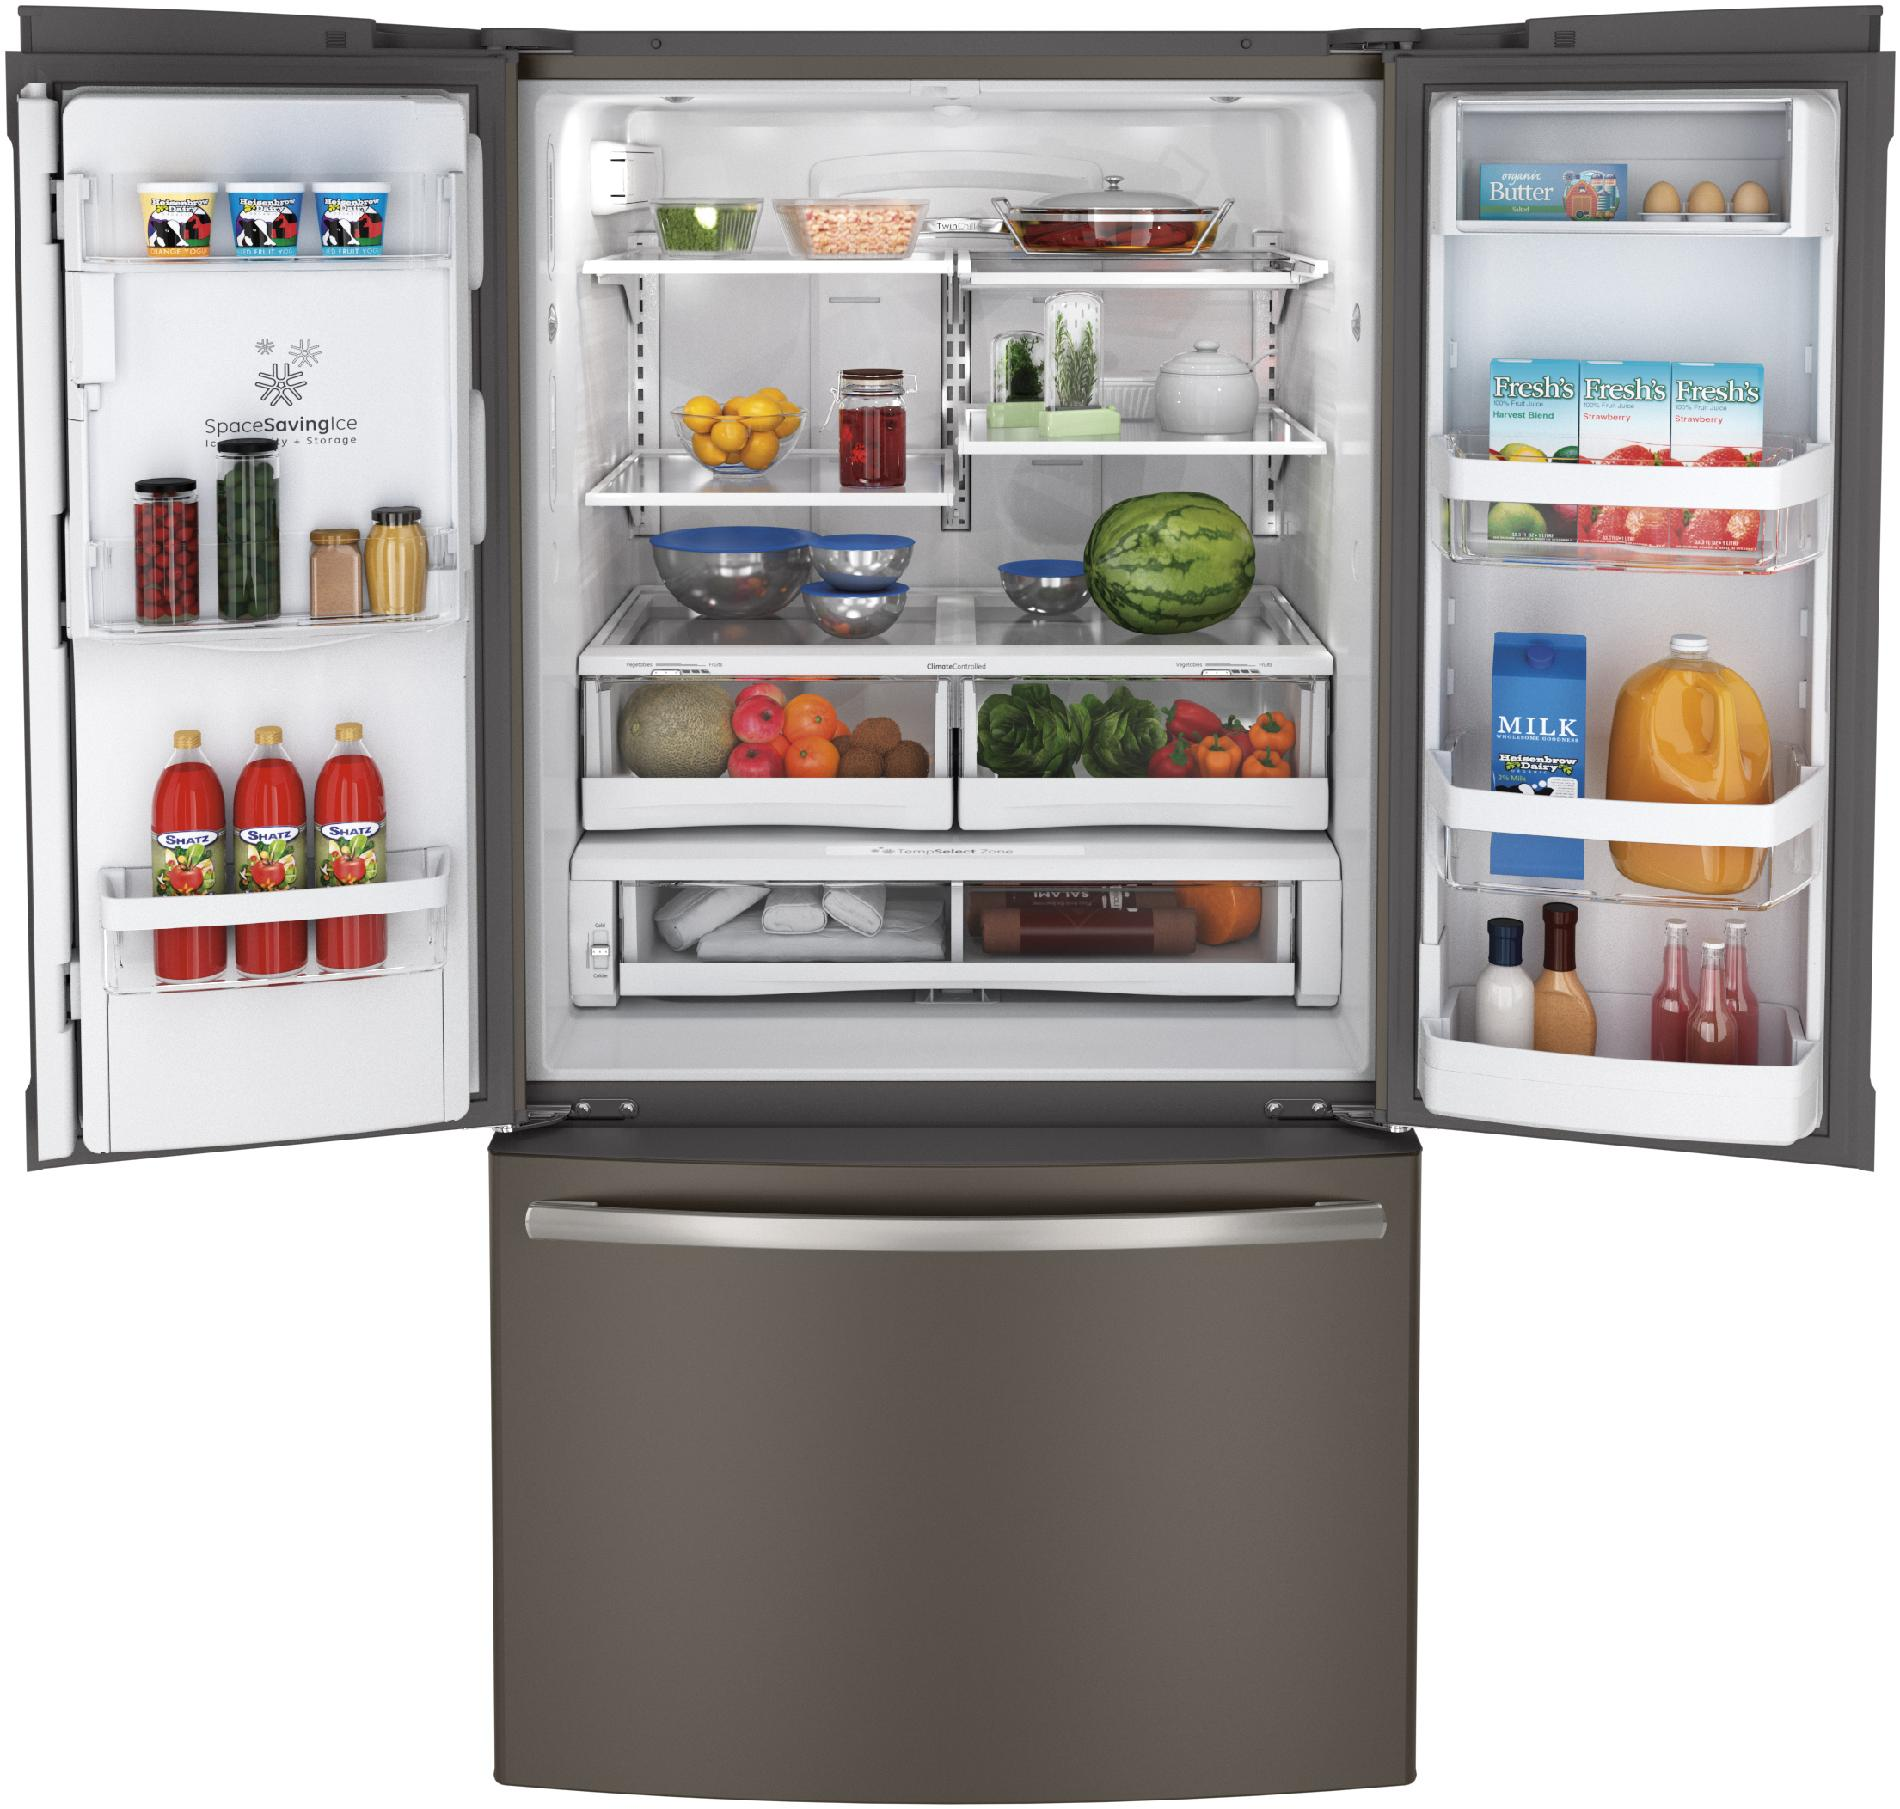 GE 28.6 cu. ft. French Door Refrigerator - Slate